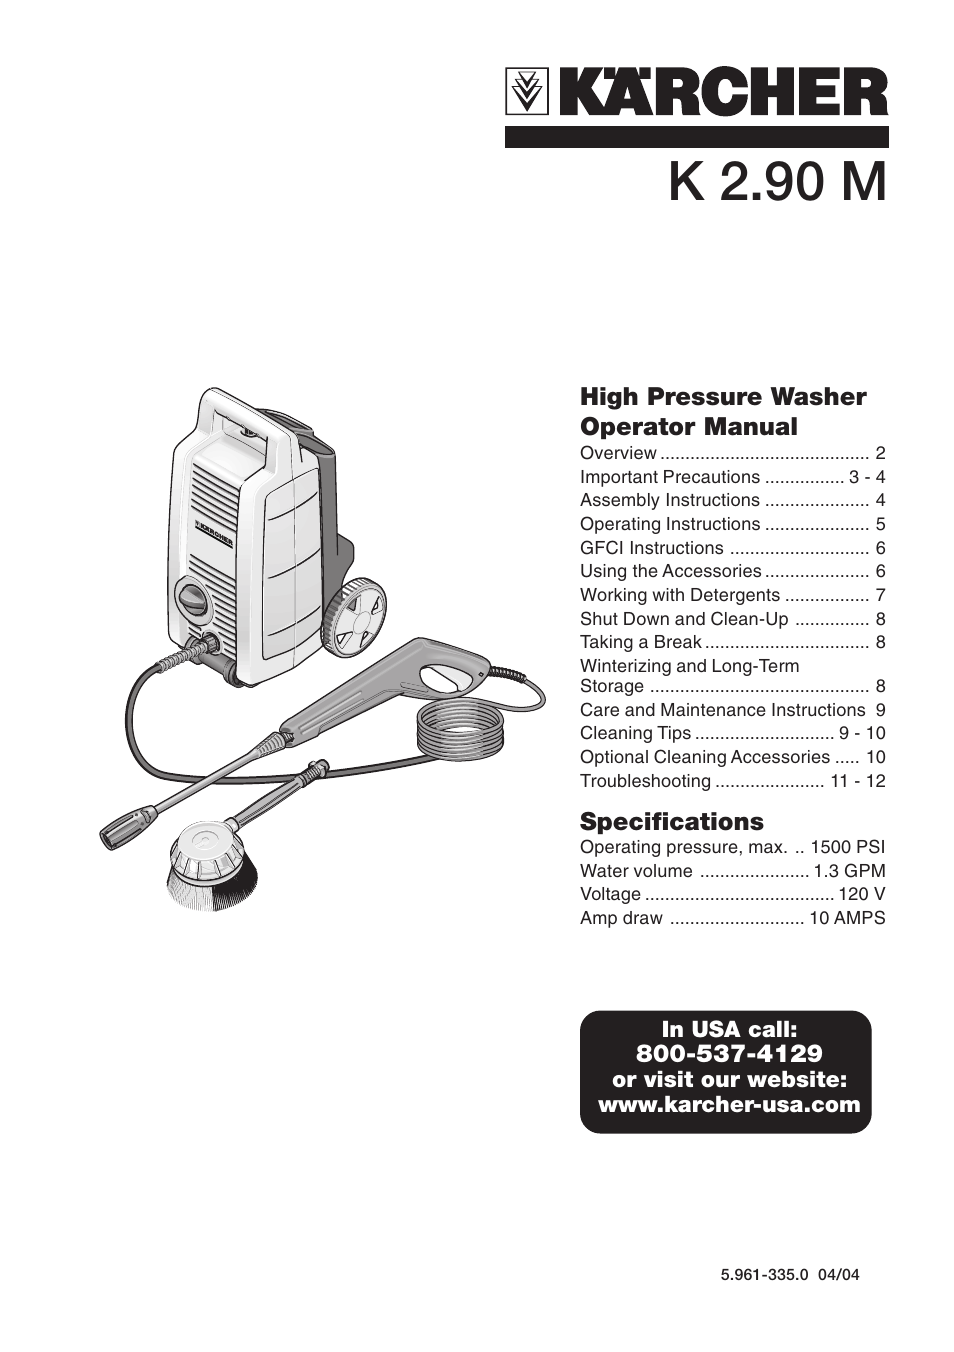 karcher k 2 90 m user manual